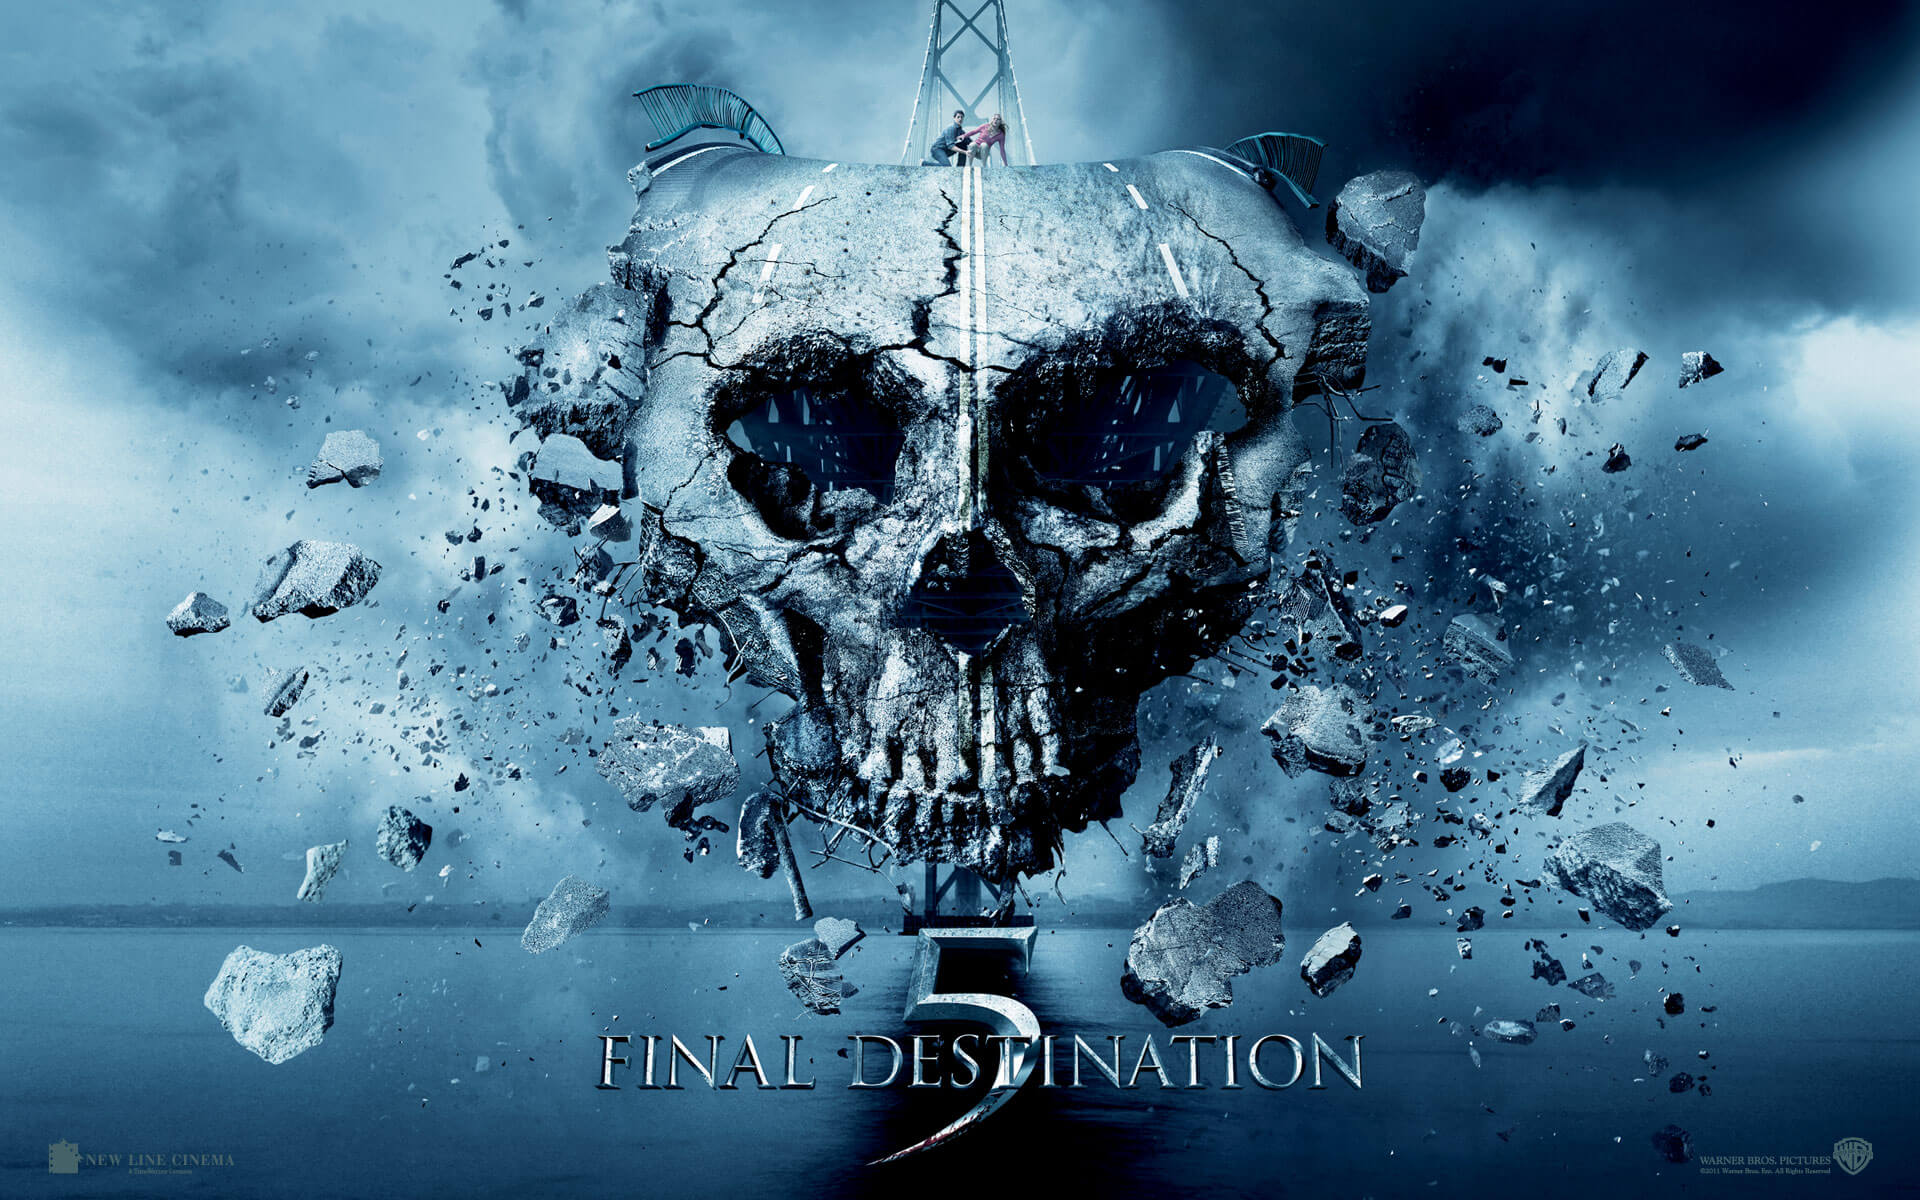 final destination 5 wallpaper background